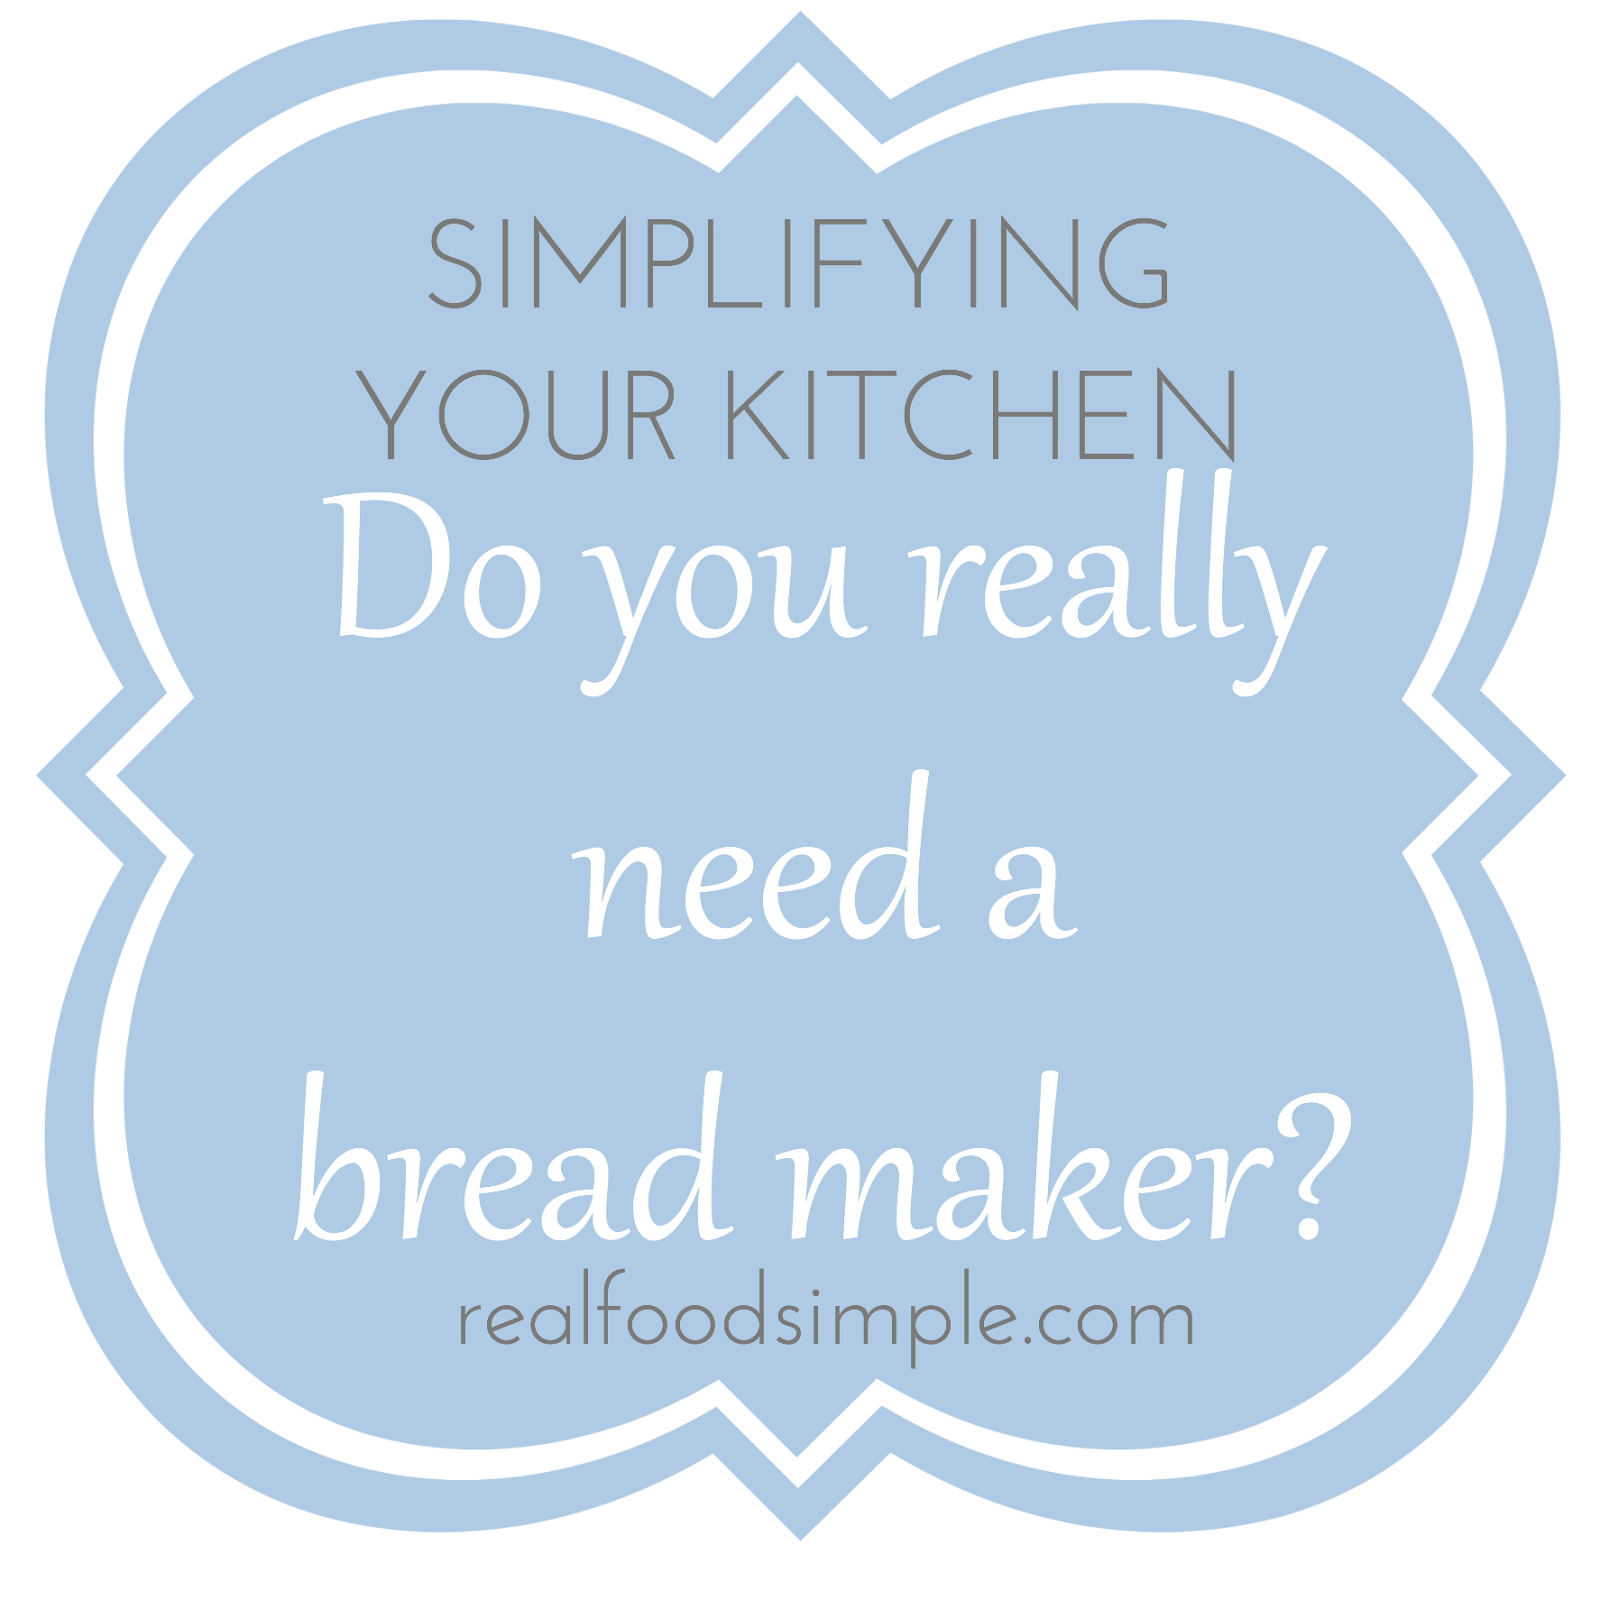 simplifying your kitchen - the breadmaker | realfoodsimple.com